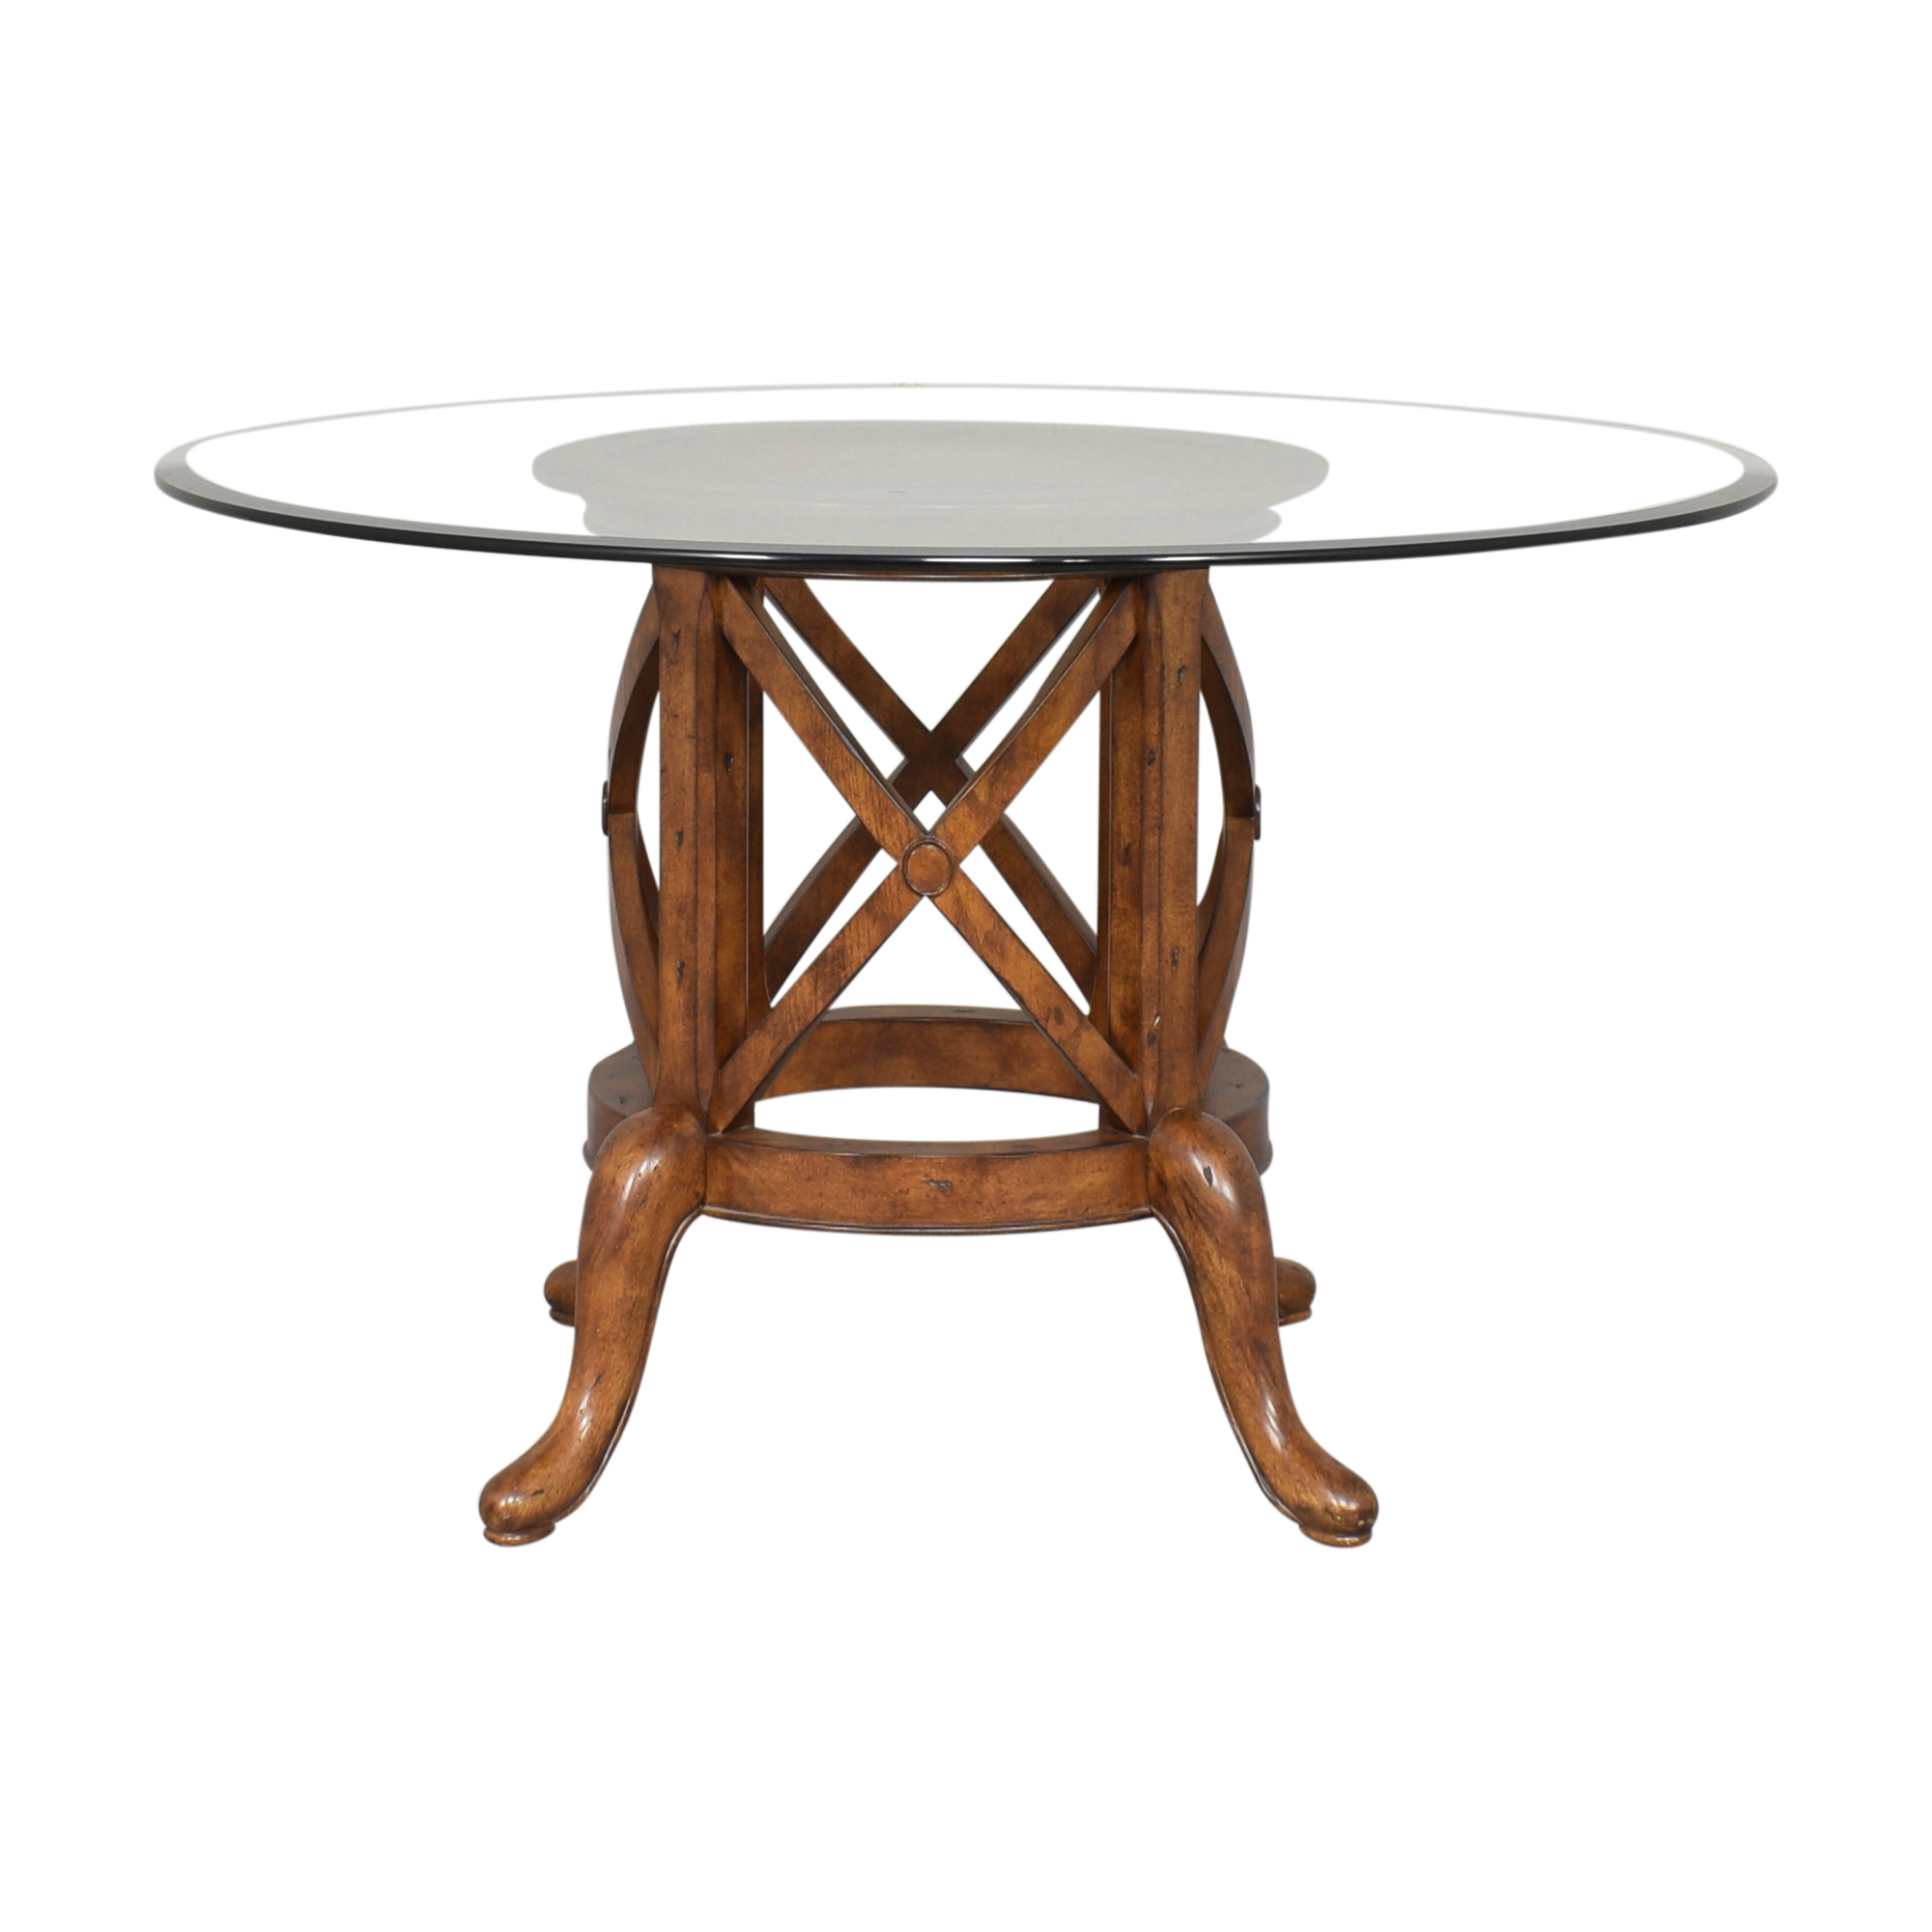 Thomasville Thomasville Round Dining Table Dinner Tables